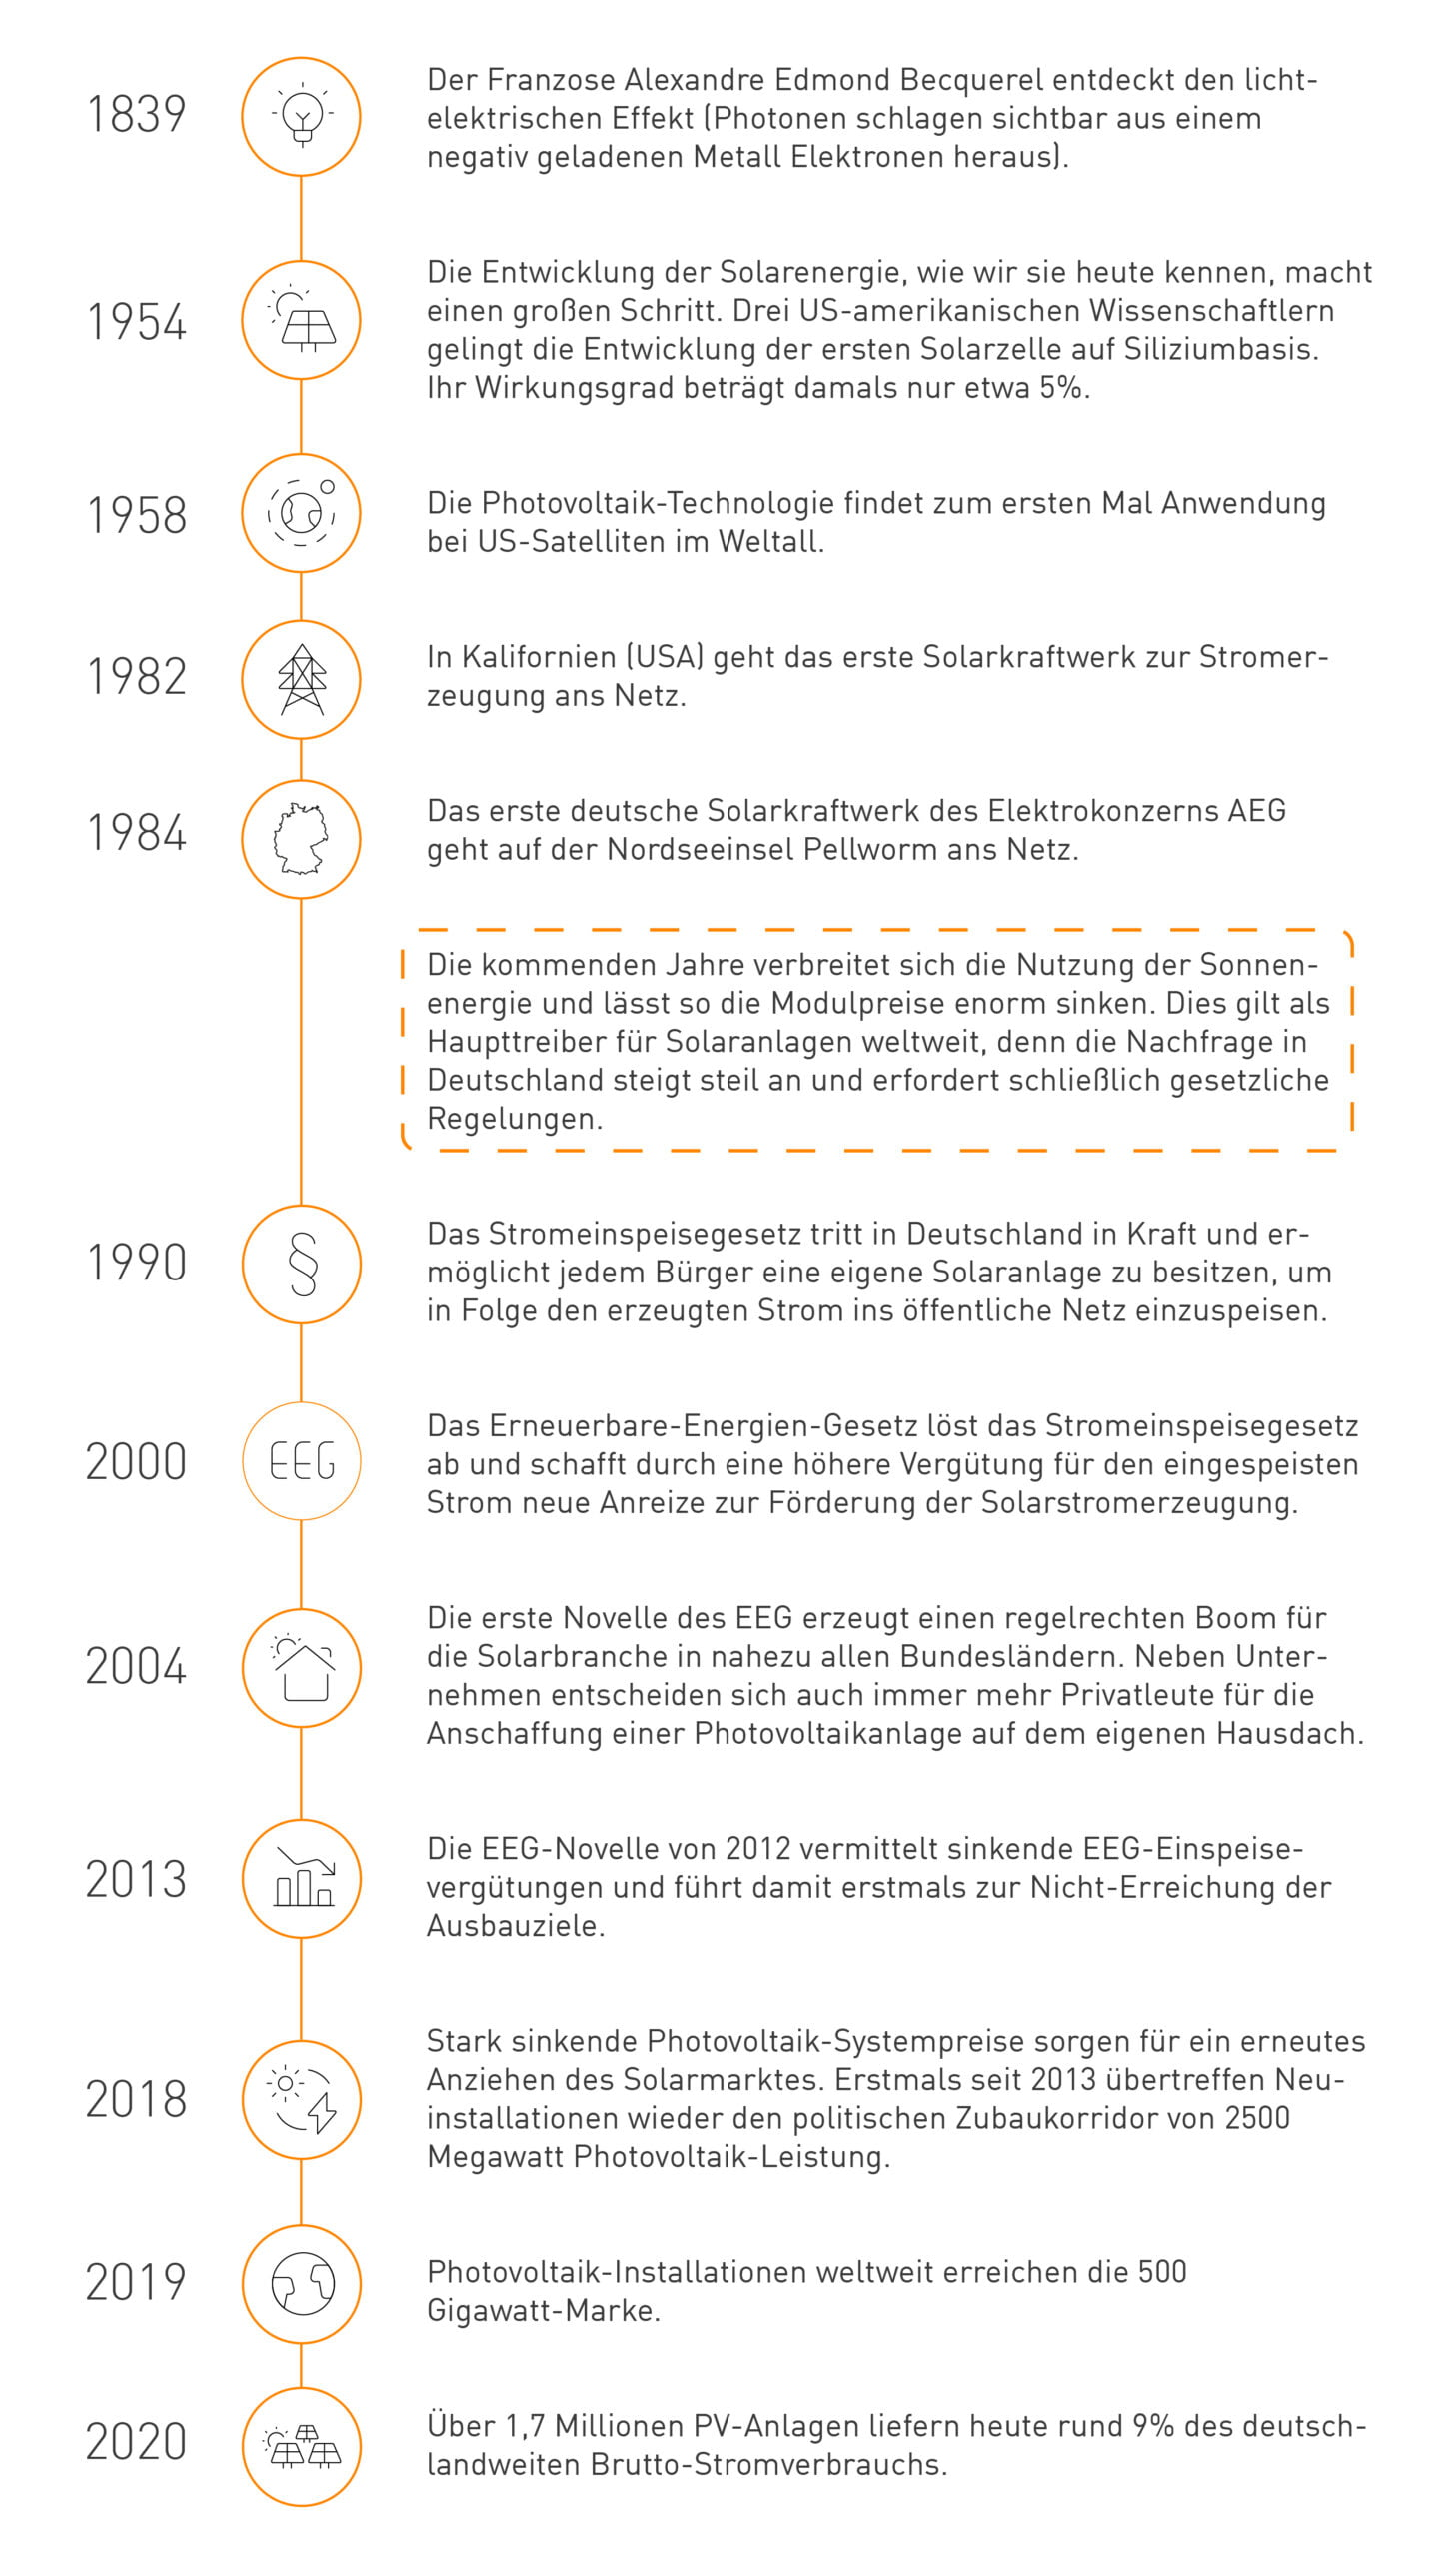 Photovoltaik Entwicklung - die ultimative Timeline